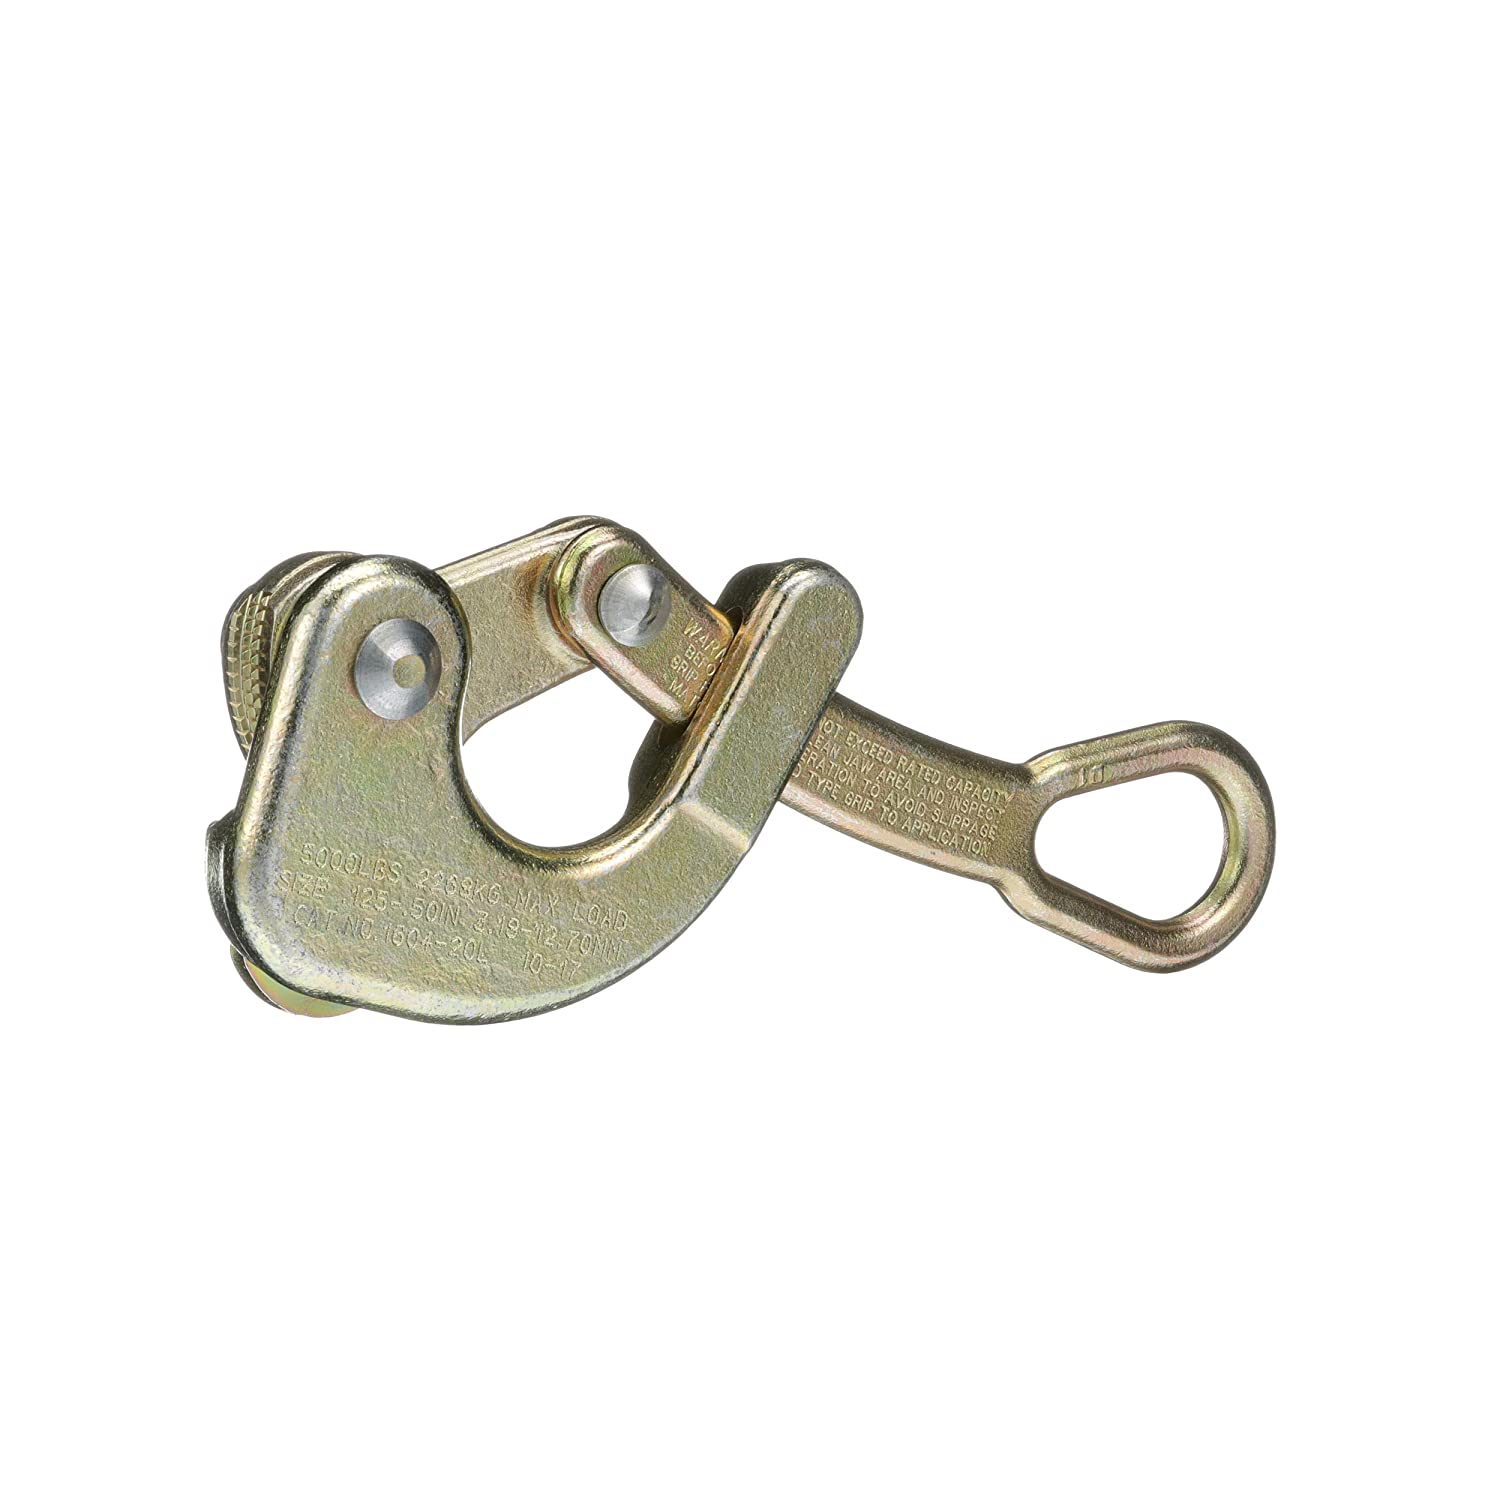 Grip, Havens Grip Wire Pulling Tool with Swing Latch Wire to 0.125 ...